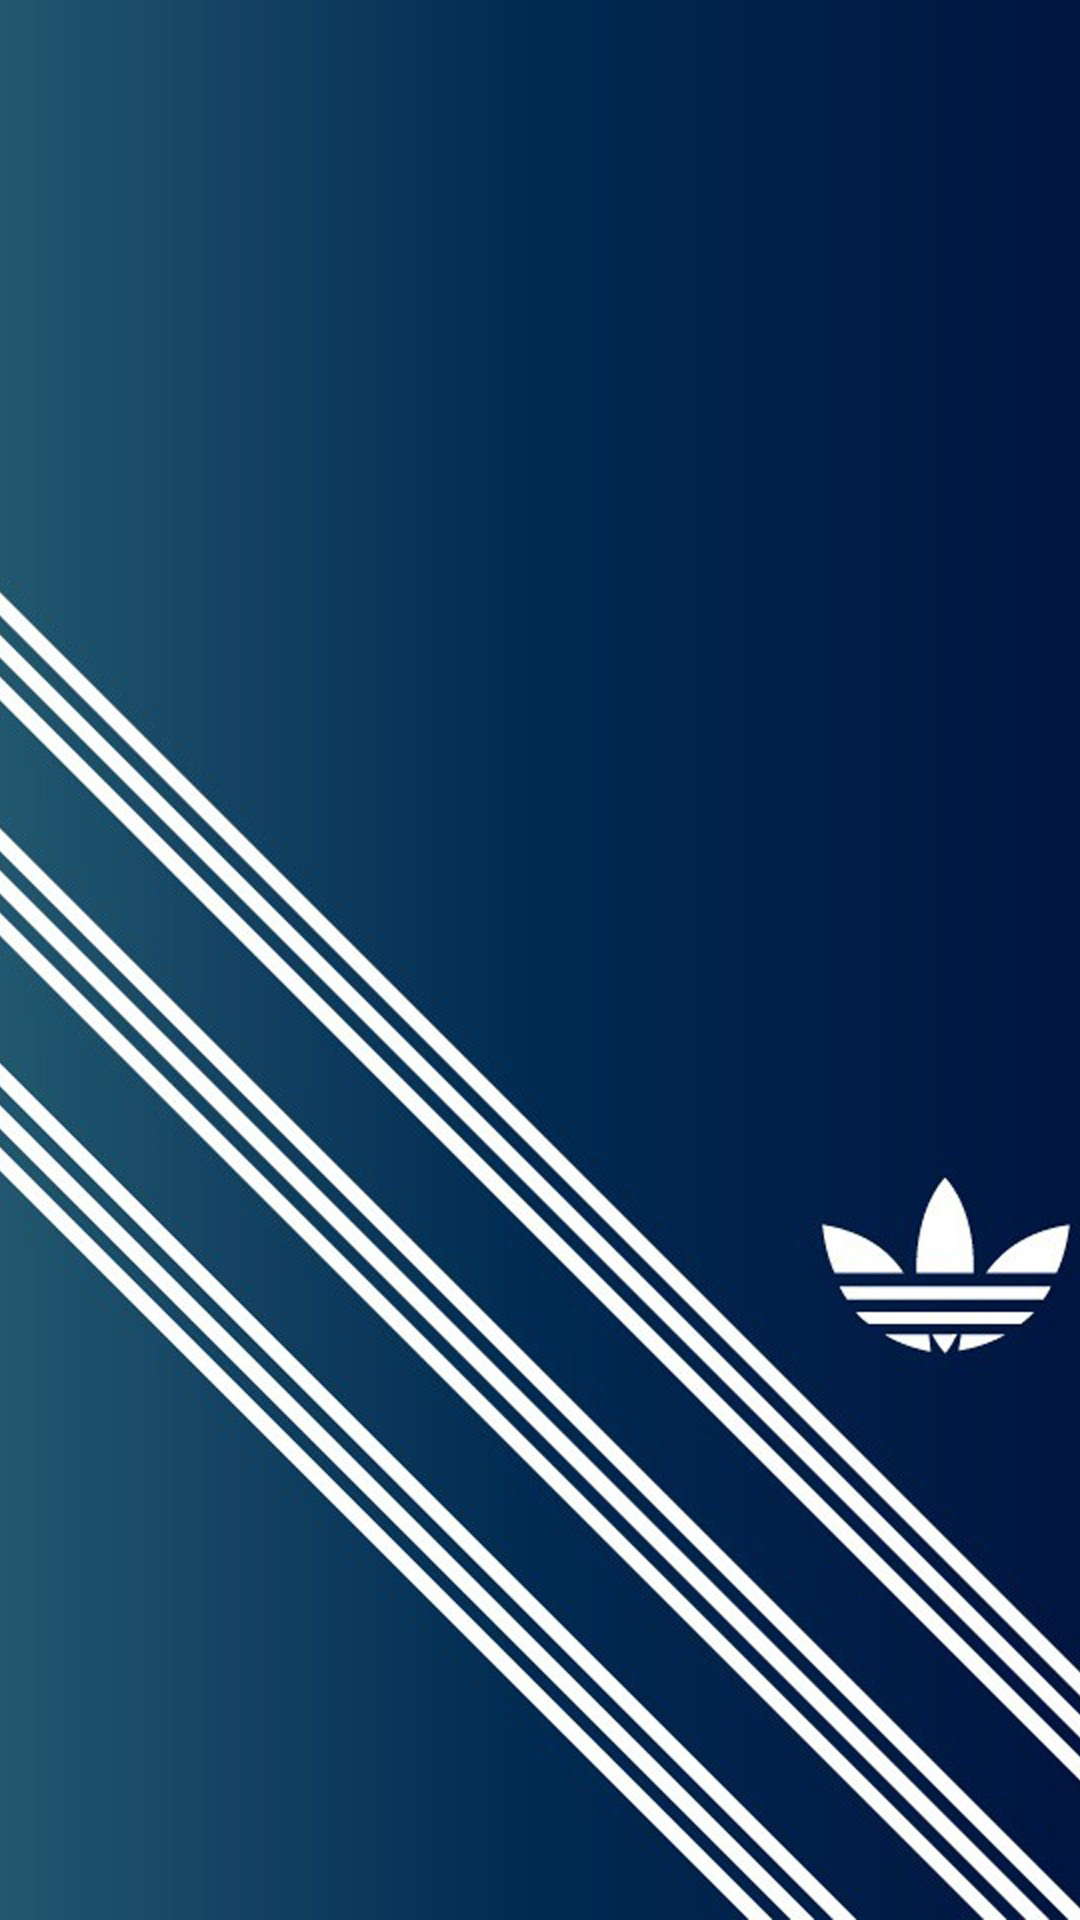 Adidas 4 HD Wallpaper iPhone 6 plus   wallpapersmobilenet 1080x1920